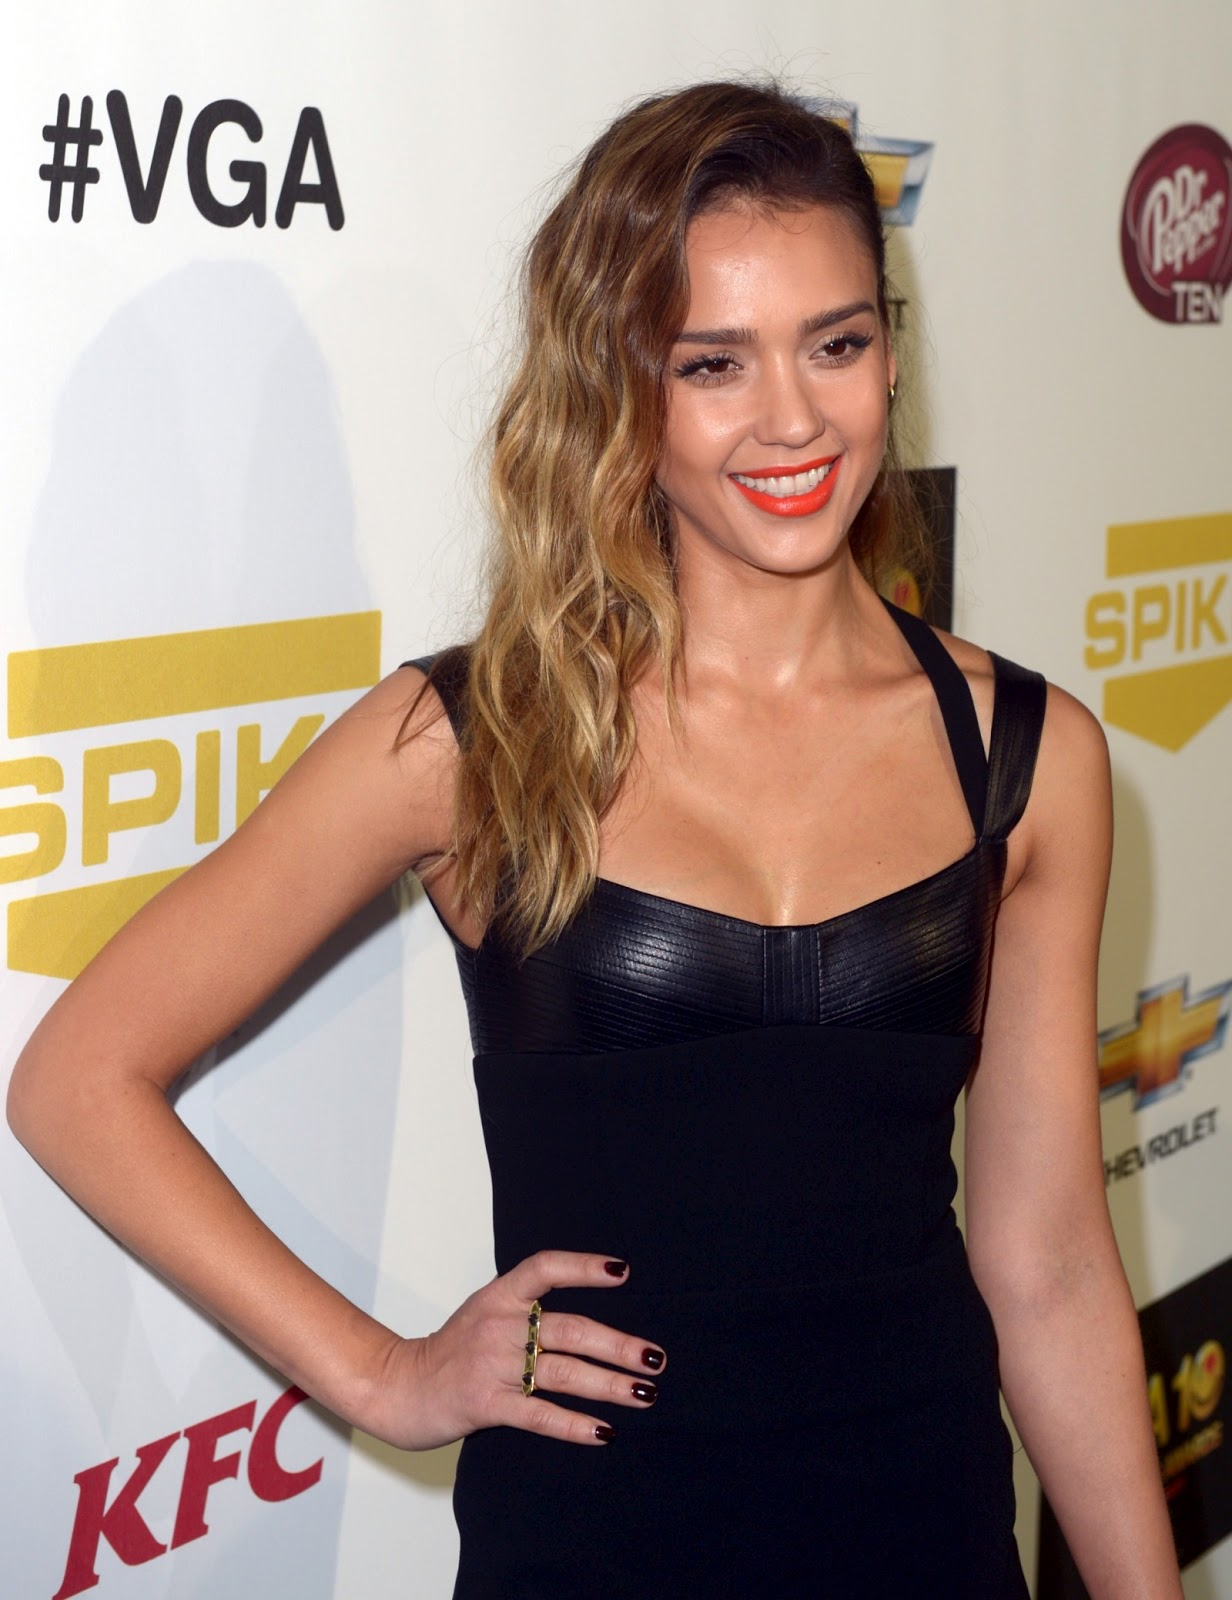 http://2.bp.blogspot.com/-XtYtCpHDXDU/UMRLaBqru4I/AAAAAAABNq0/yODtG_xkwfU/s1600/Jessica-Alba-Spike-TV-10th-Annual-Video-Game-Awards+%281%29.jpg